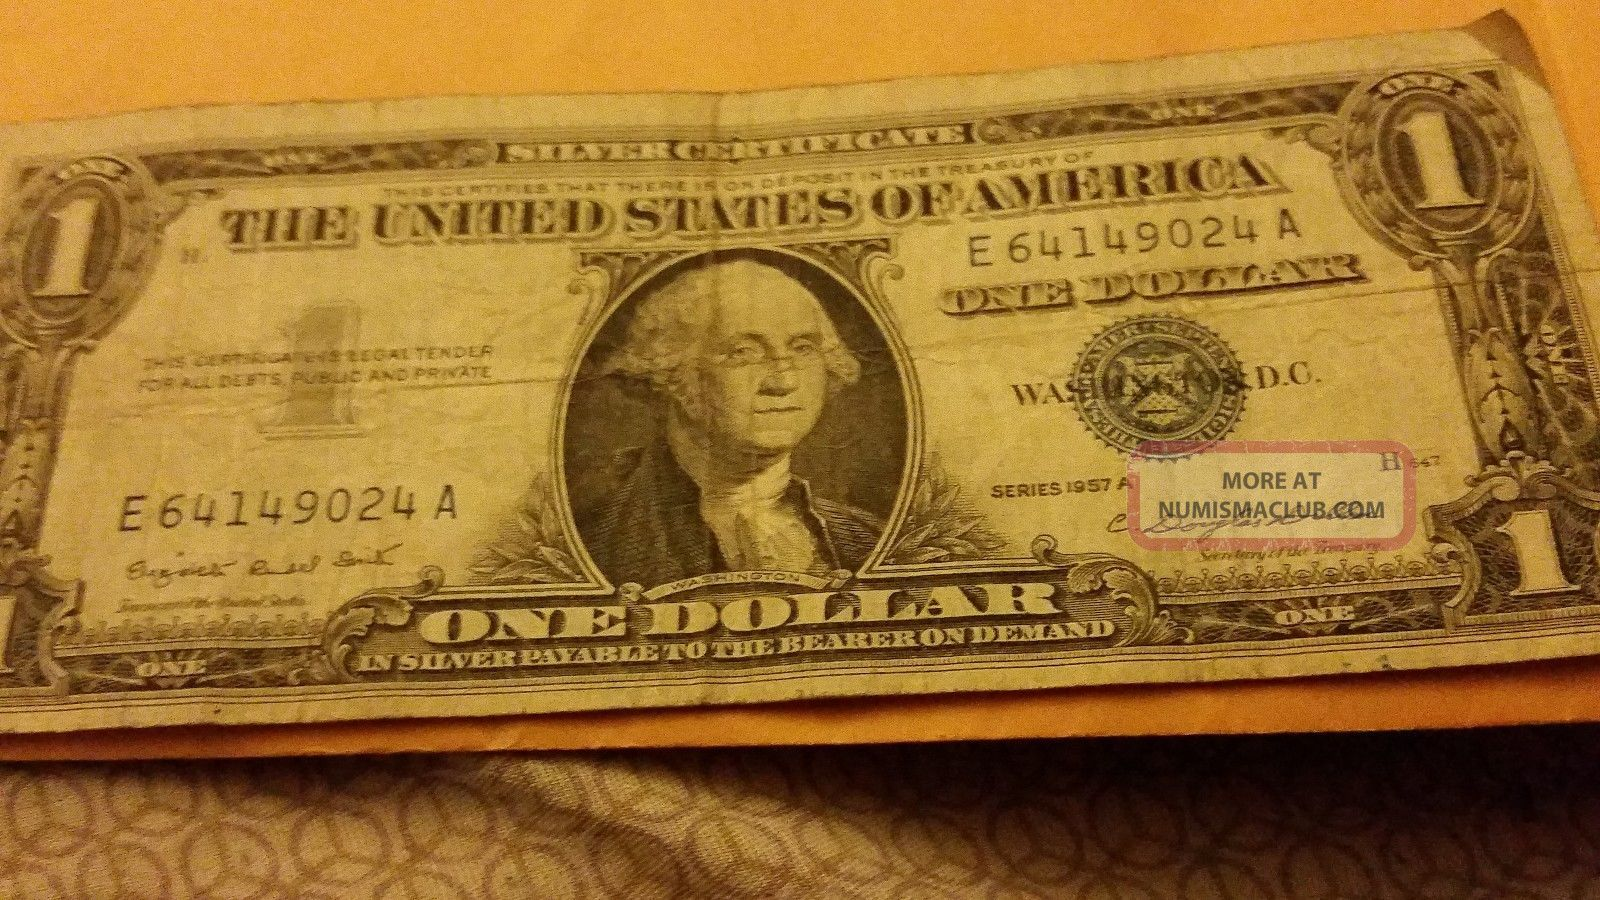 1957 Silver Certificate Dollar Small Size Notes photo